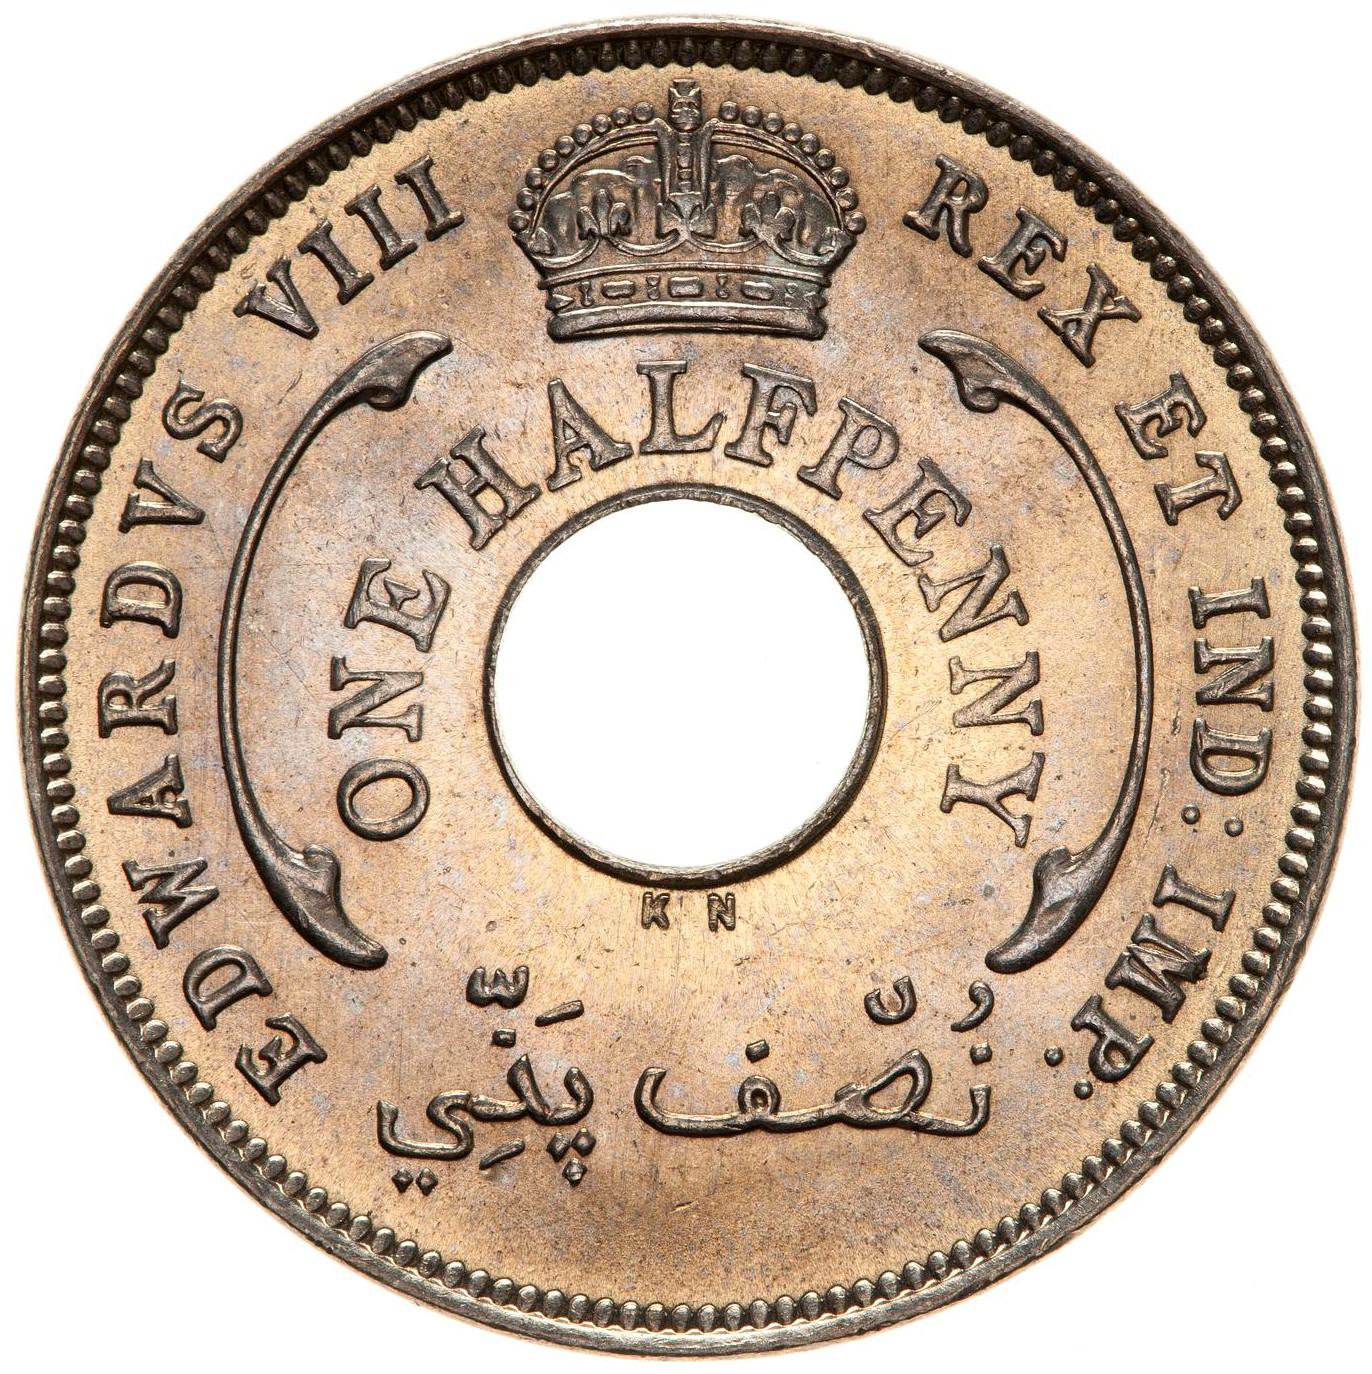 Halfpenny (George V and Edward VIII): Photo Coin - 1/2 Penny, British West Africa, 1936